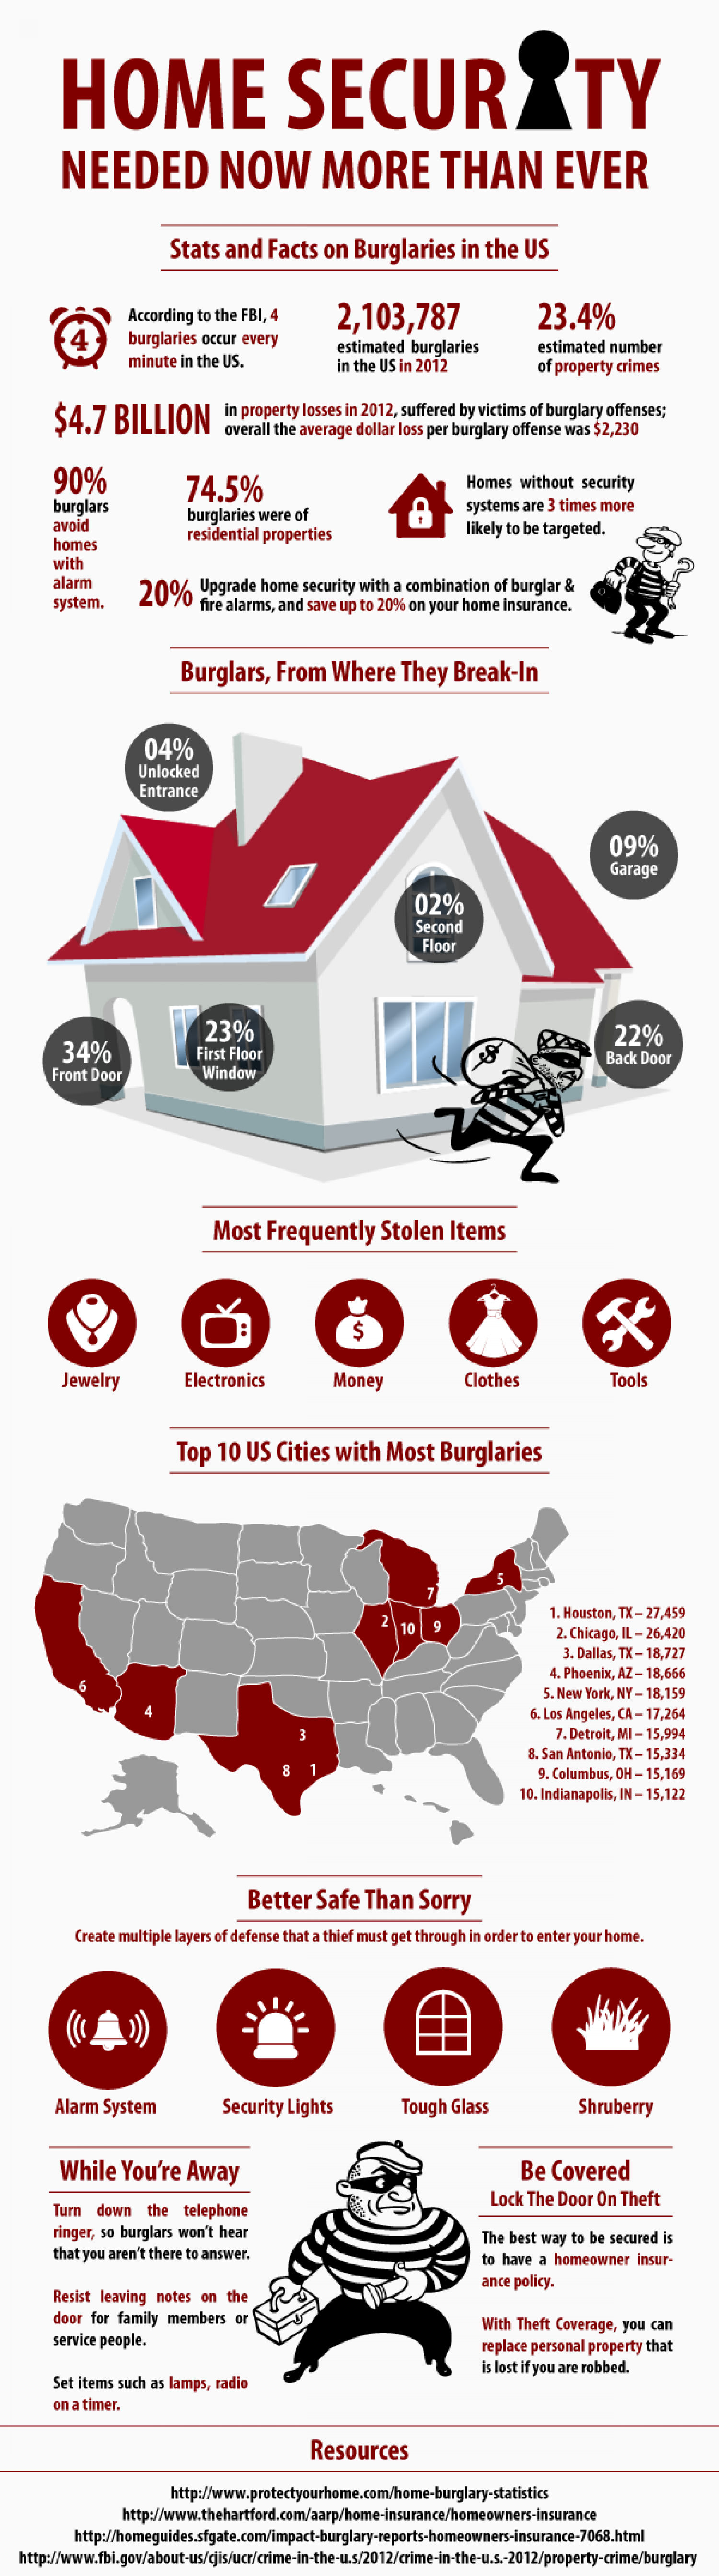 Home Security Needed now More Than Ever Infographic